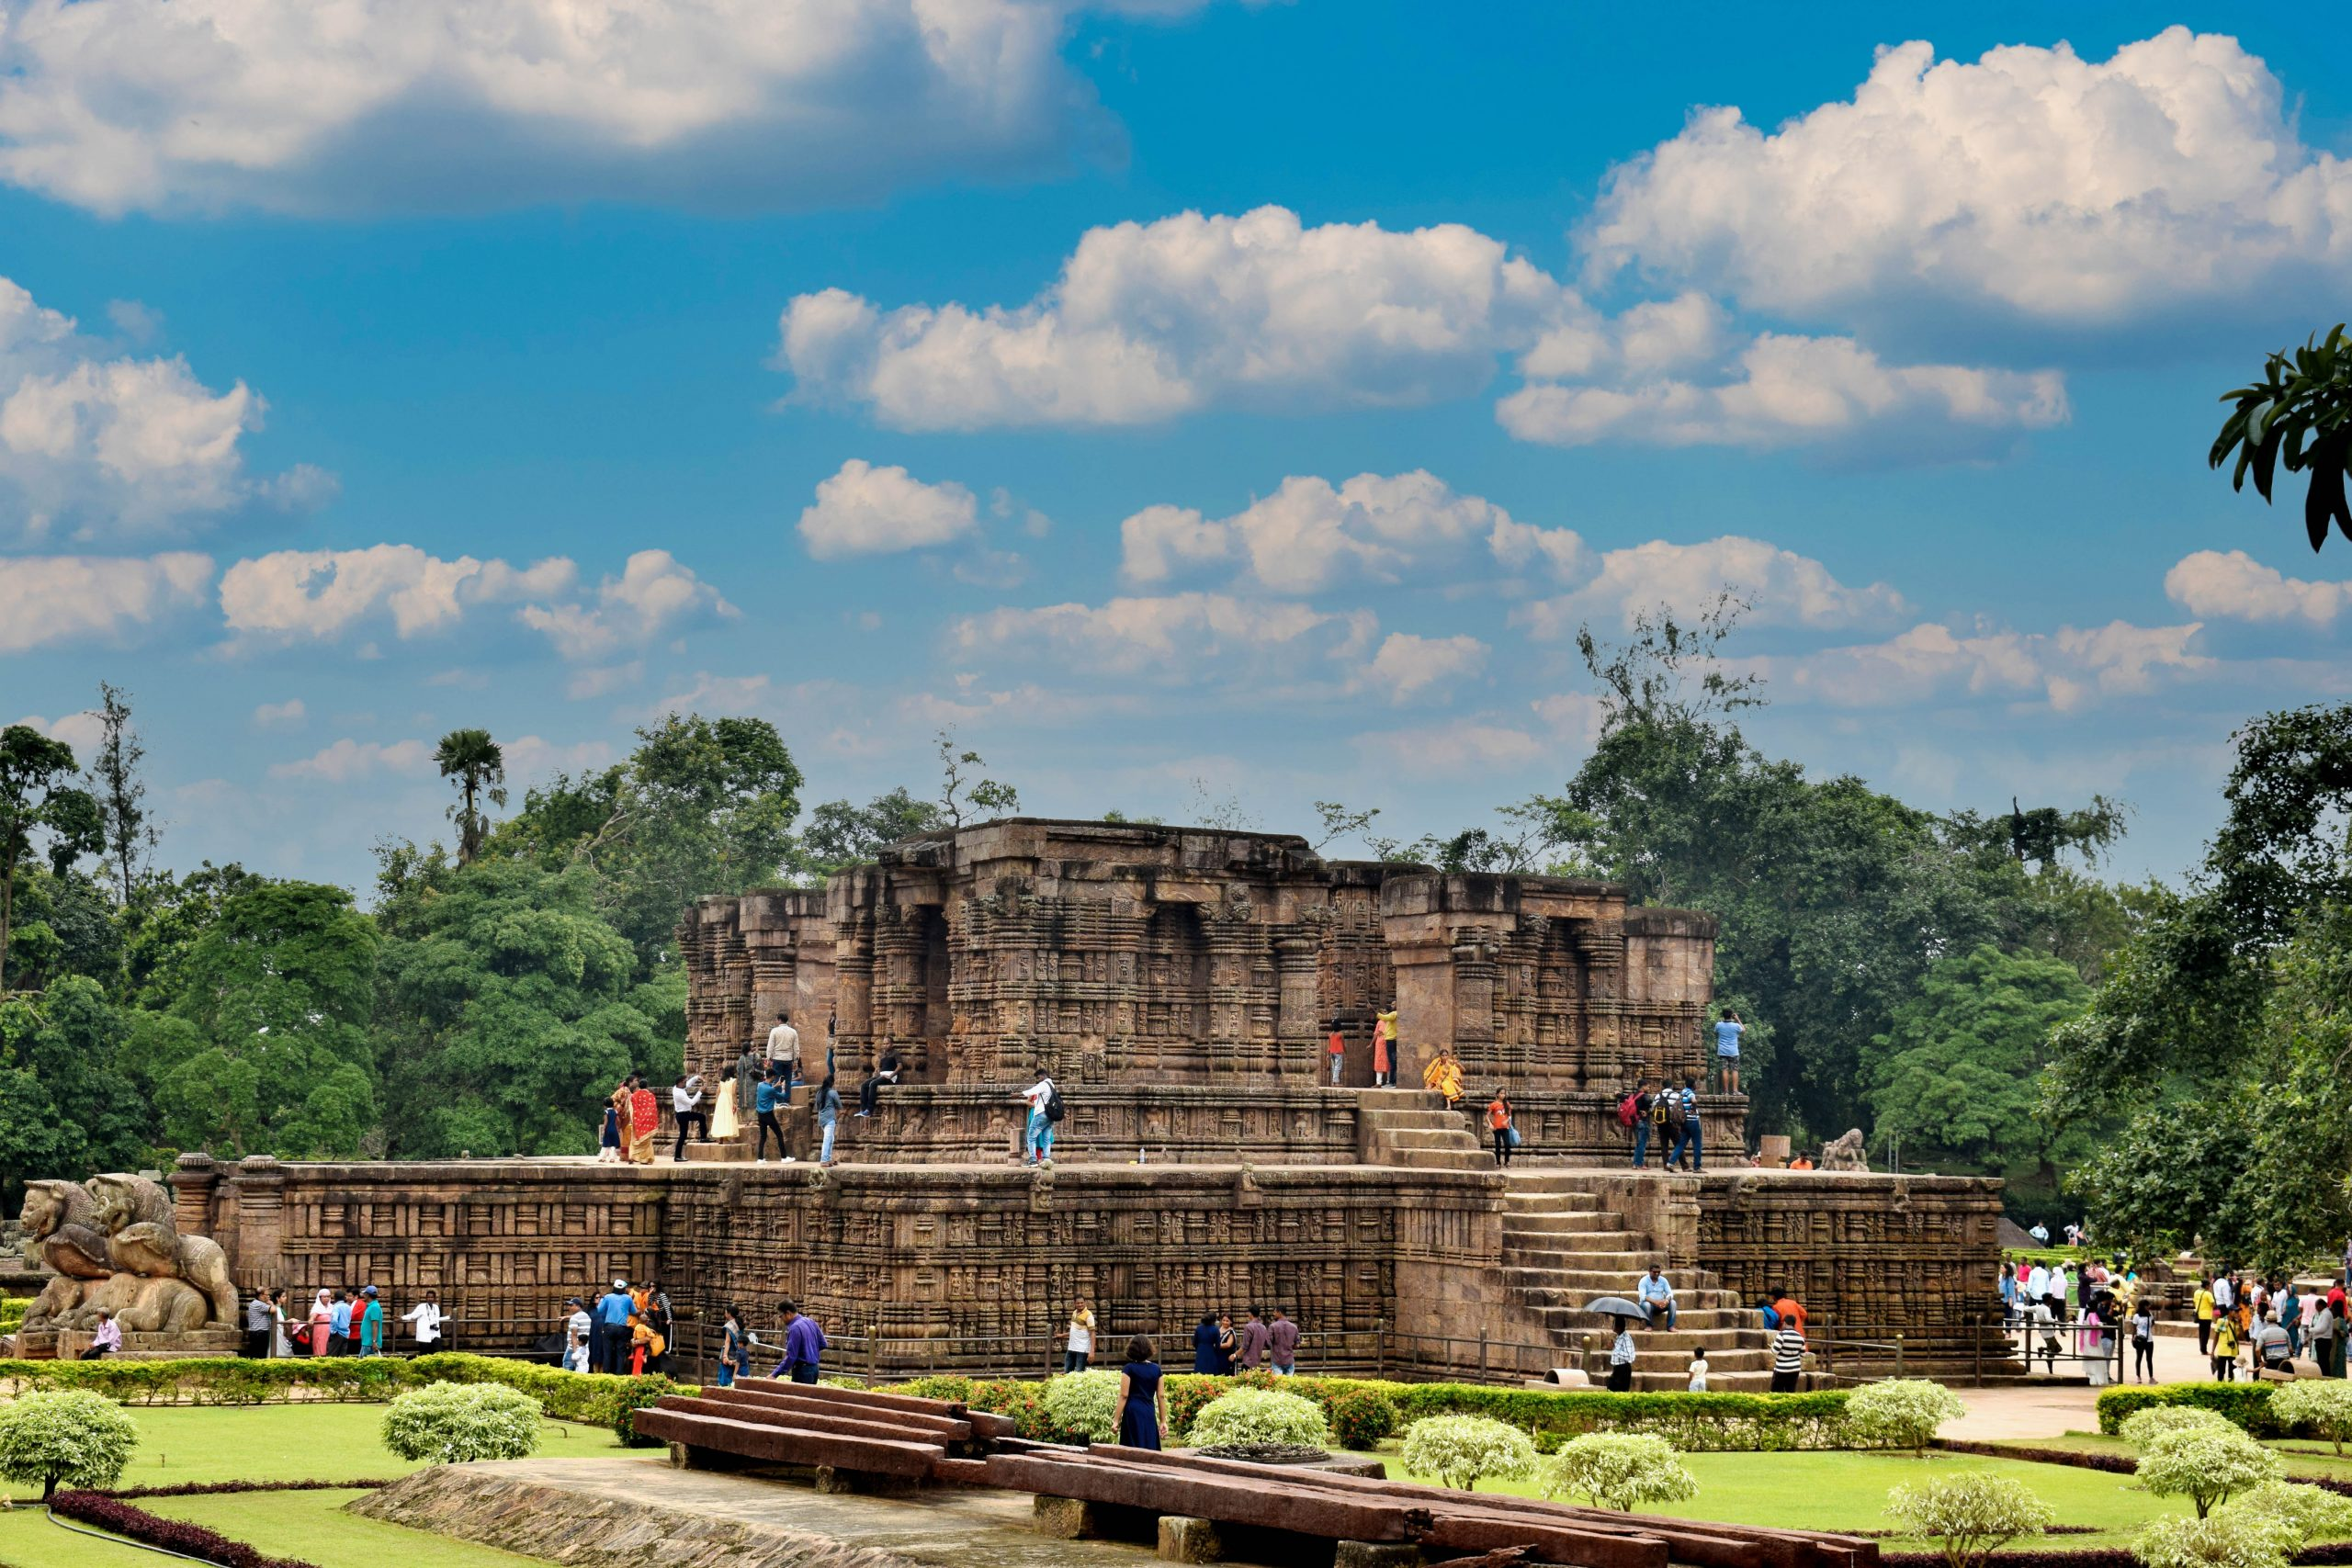 People at Konark Sun temple in Odisha